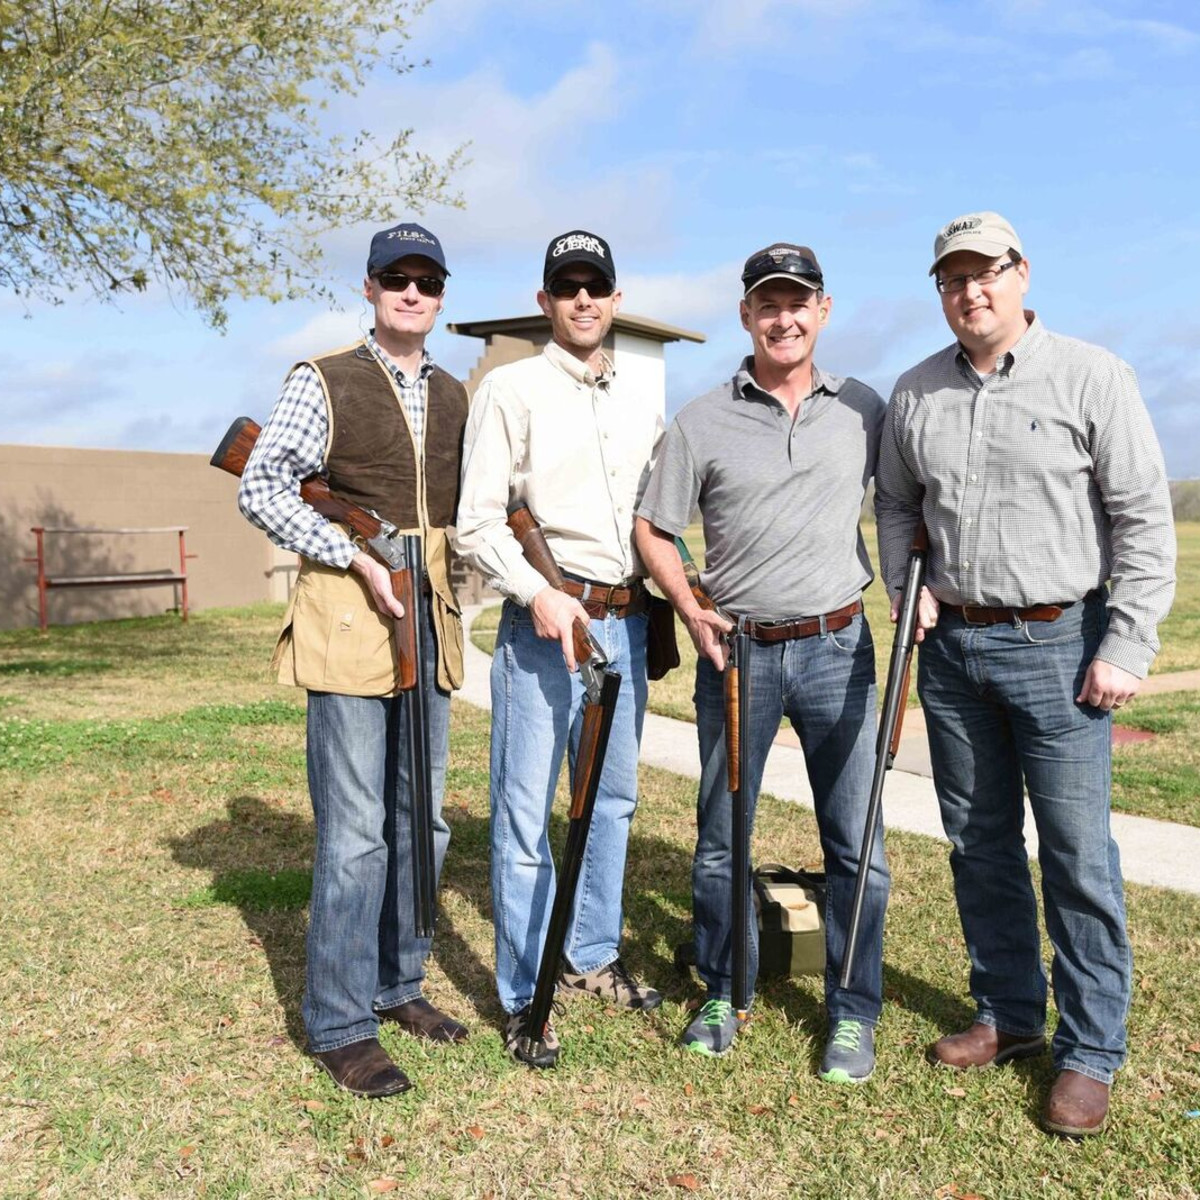 Craig Cordola, Wade Burgess, Scott Breeze, Greg Haralson at Memorial Hermann Clay Shoot